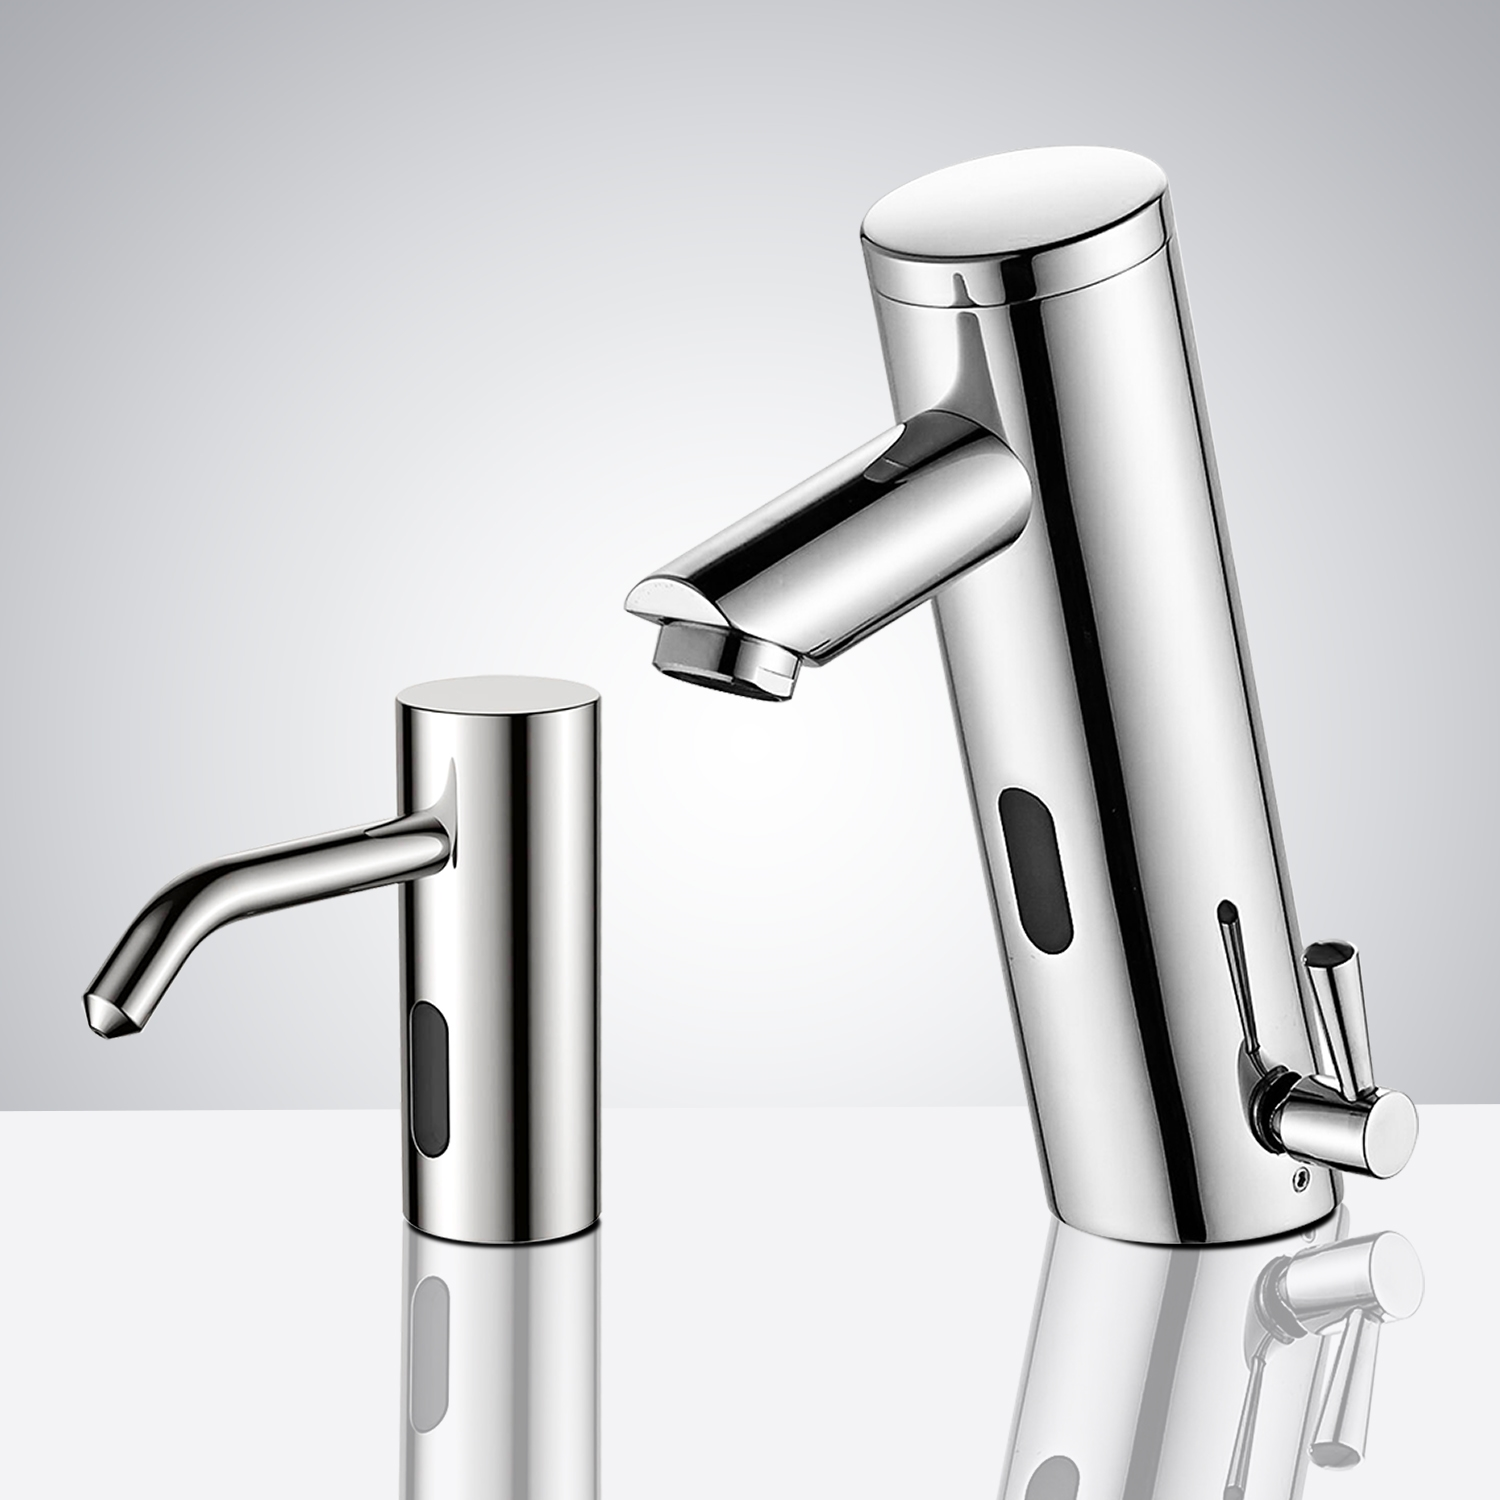 Fontana Sète Motion Sensor Faucet & Automatic Soap Dispenser for Restrooms